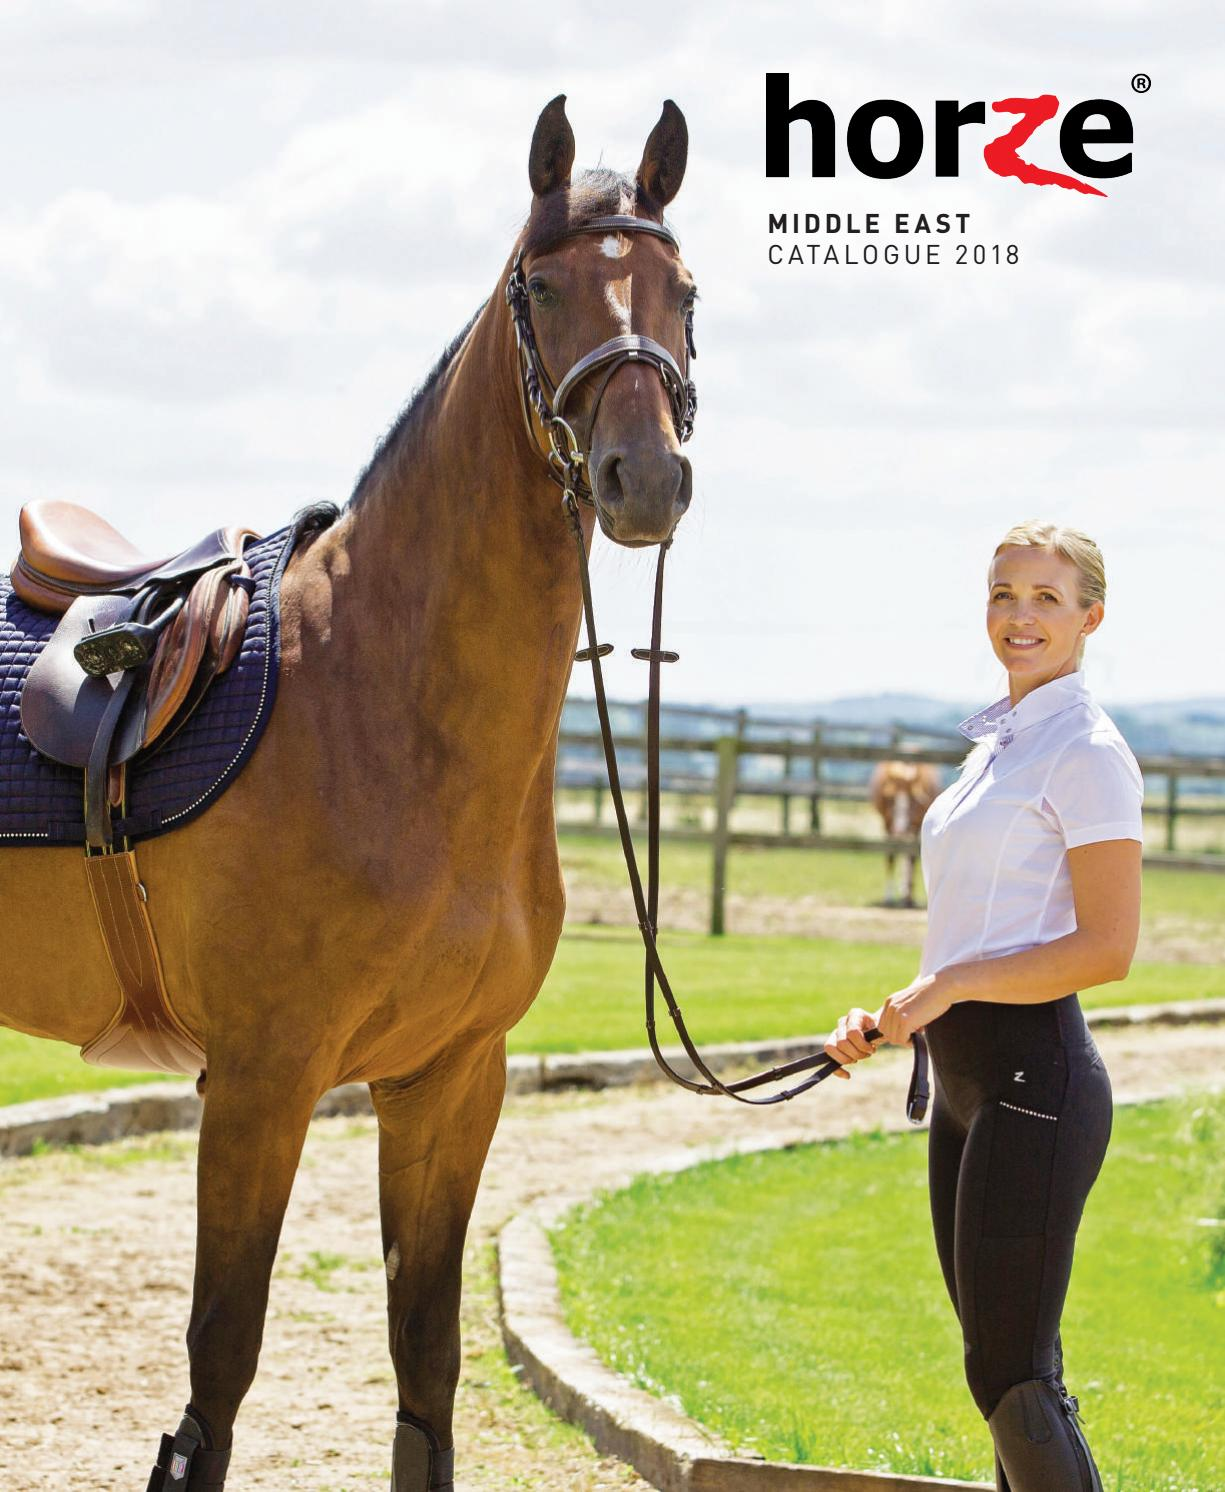 3cc93427e Horze Middle East Catalogue - 2018 by Horze Middle East - issuu